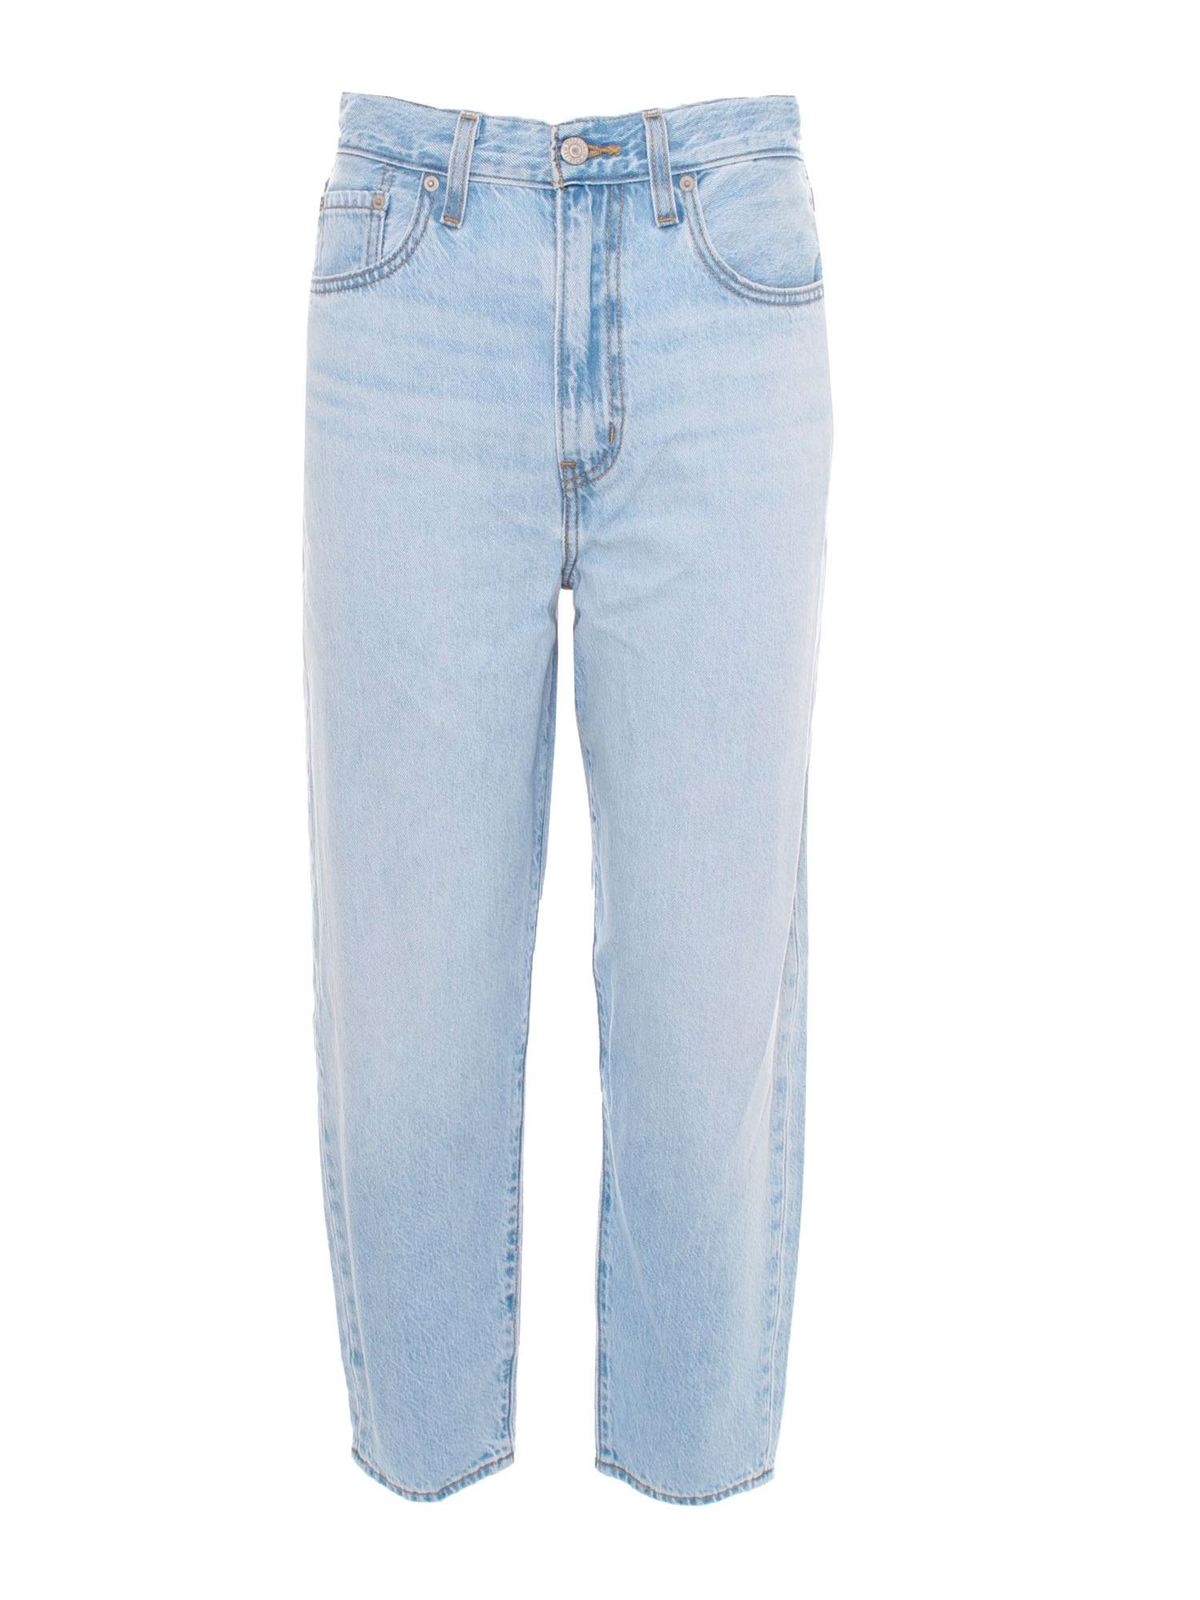 Levi's HIGH LOOSE TAPER JEANS IN LIGHT BLUE